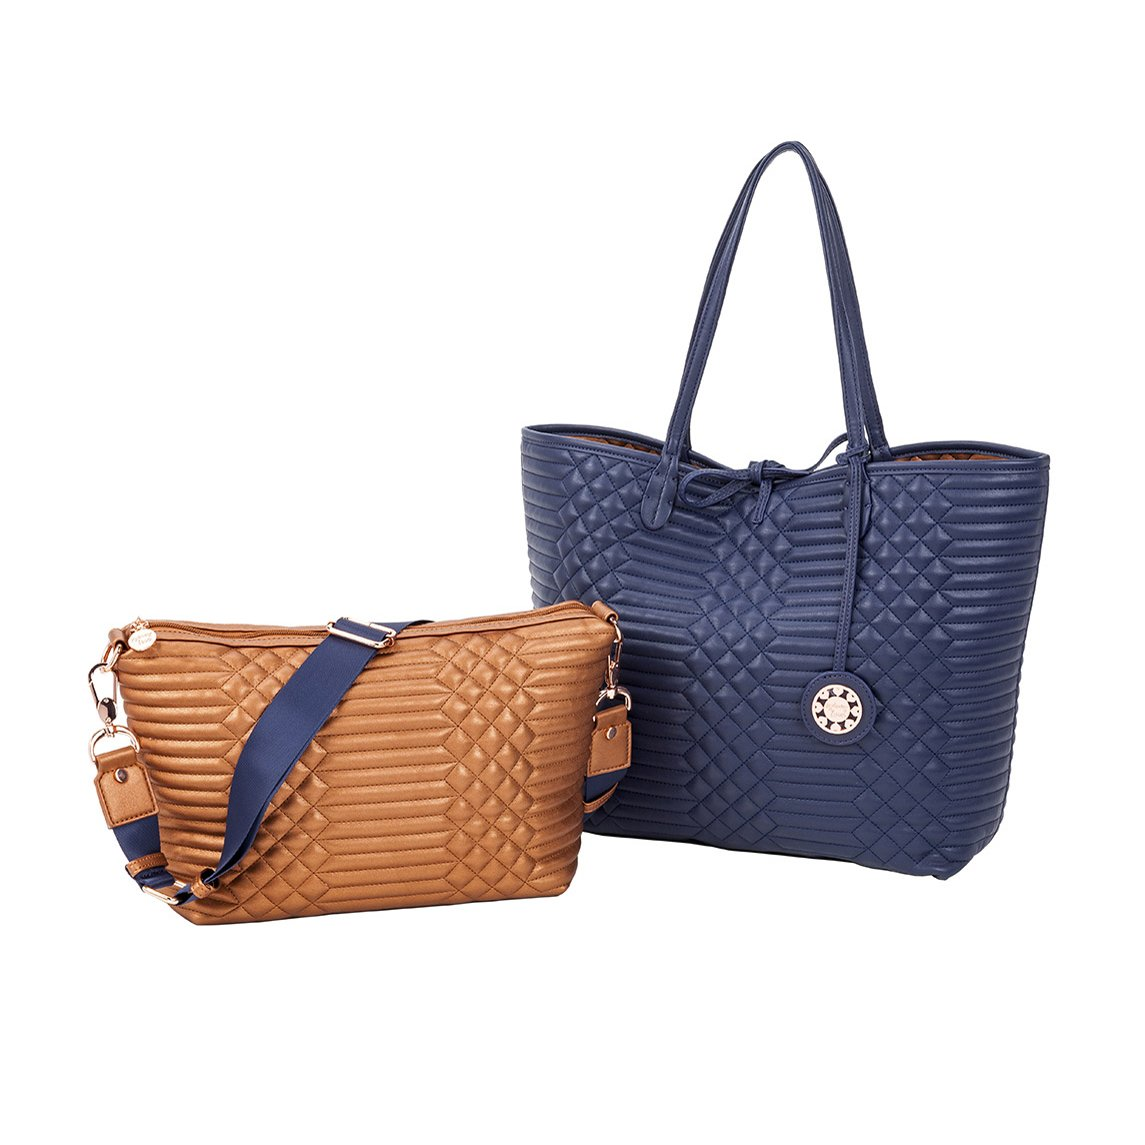 Sydney Love Qulilted Reversible Tote & Crossbody Set, Navy/Copper